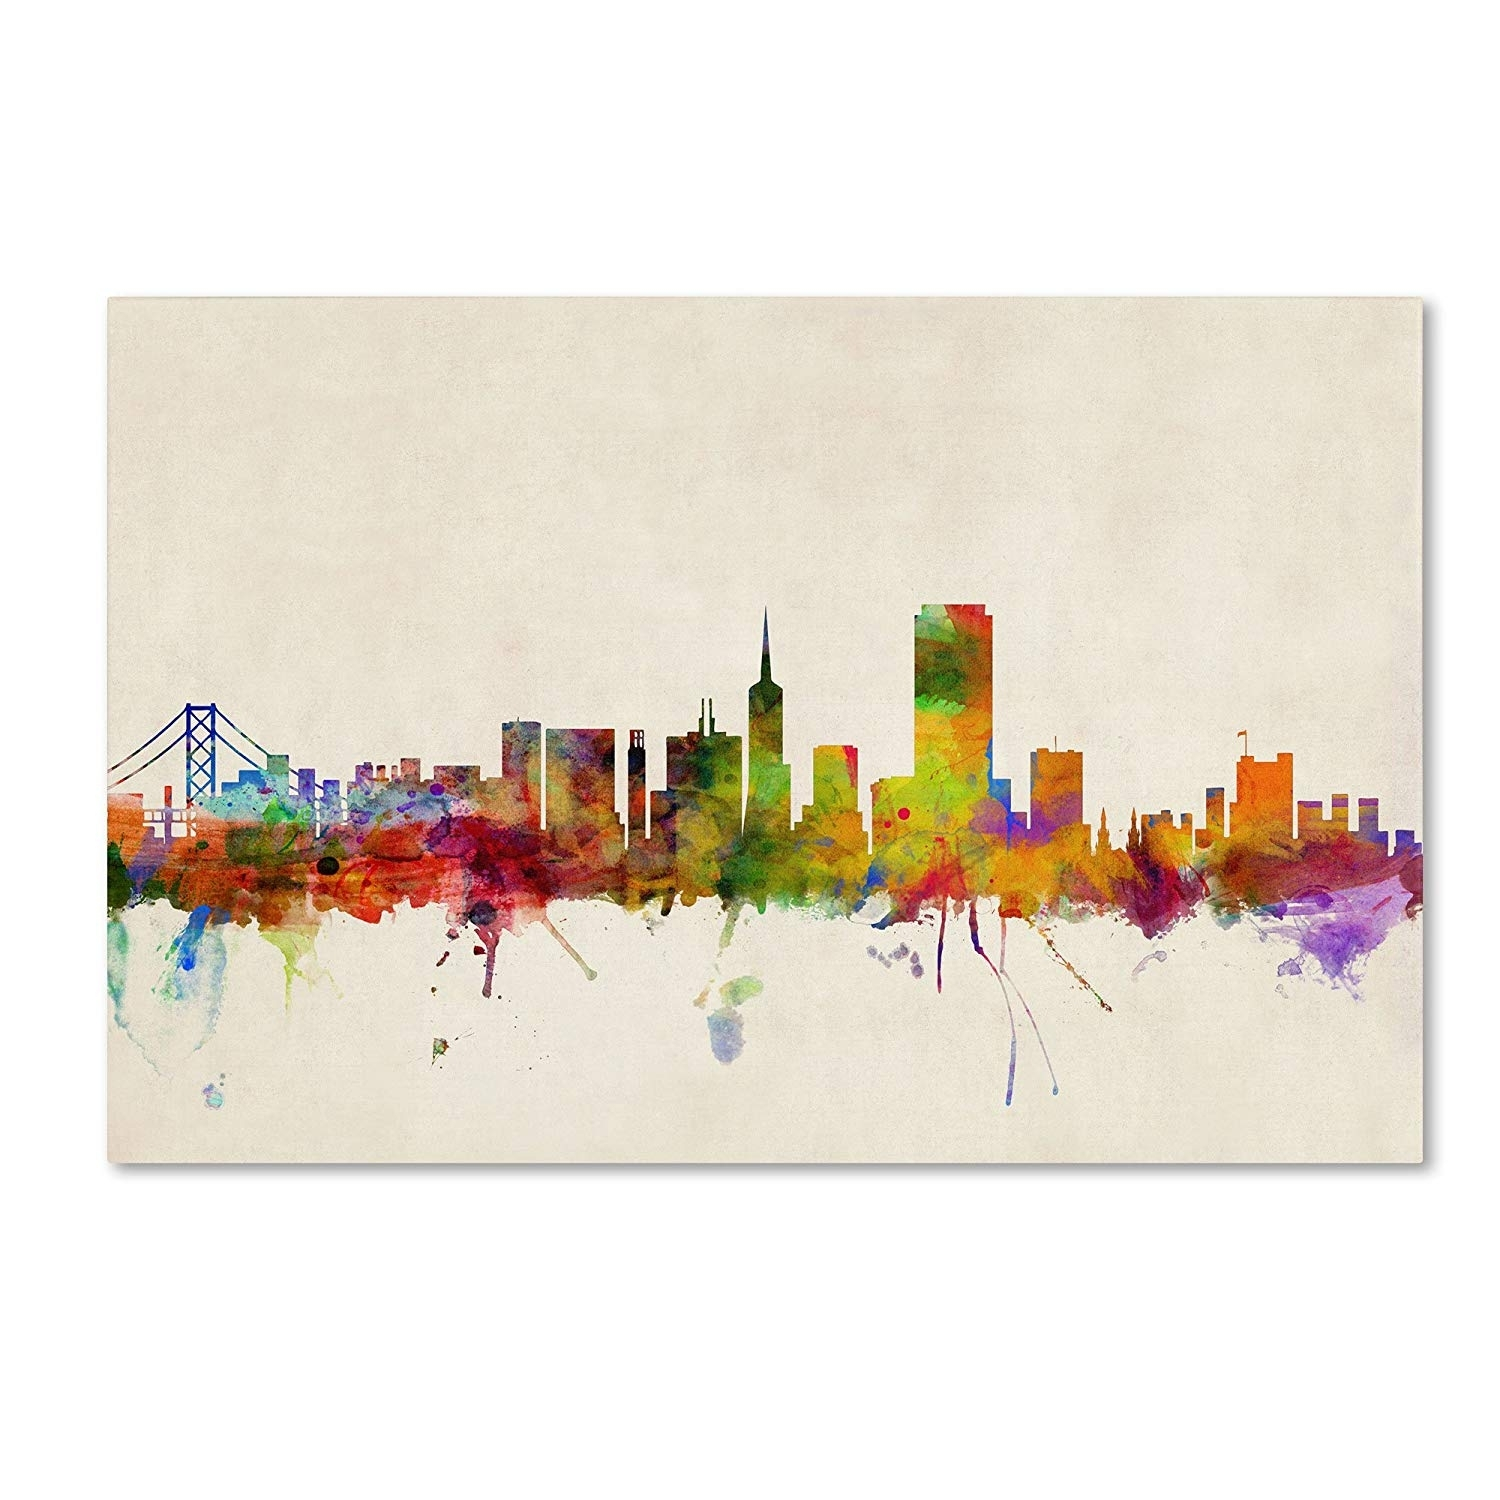 San Francisco, Californiamichael Tompsett, 22 32-Inch Canvas throughout San Francisco Wall Art (Image 17 of 20)